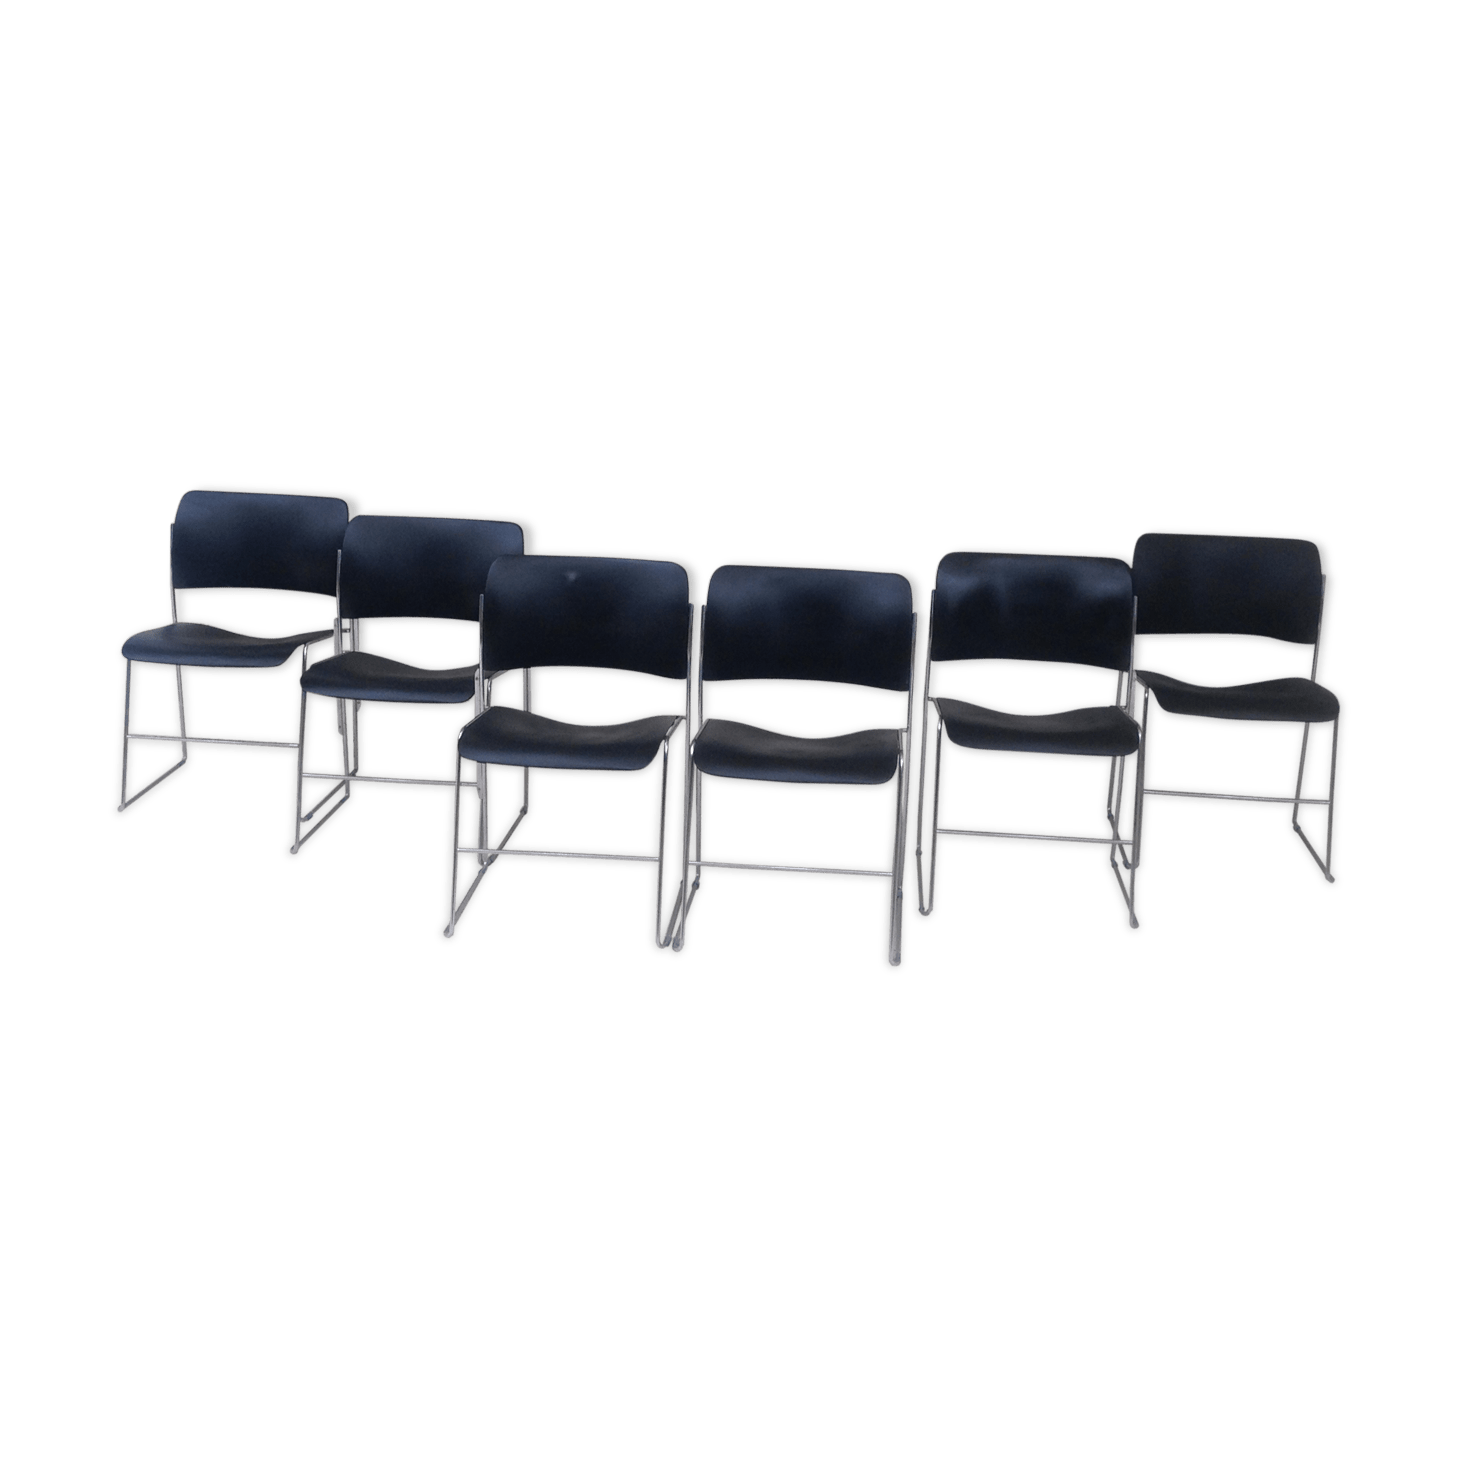 david rowland metal chair hot pink office set of 6 chairs by edition 1969 black